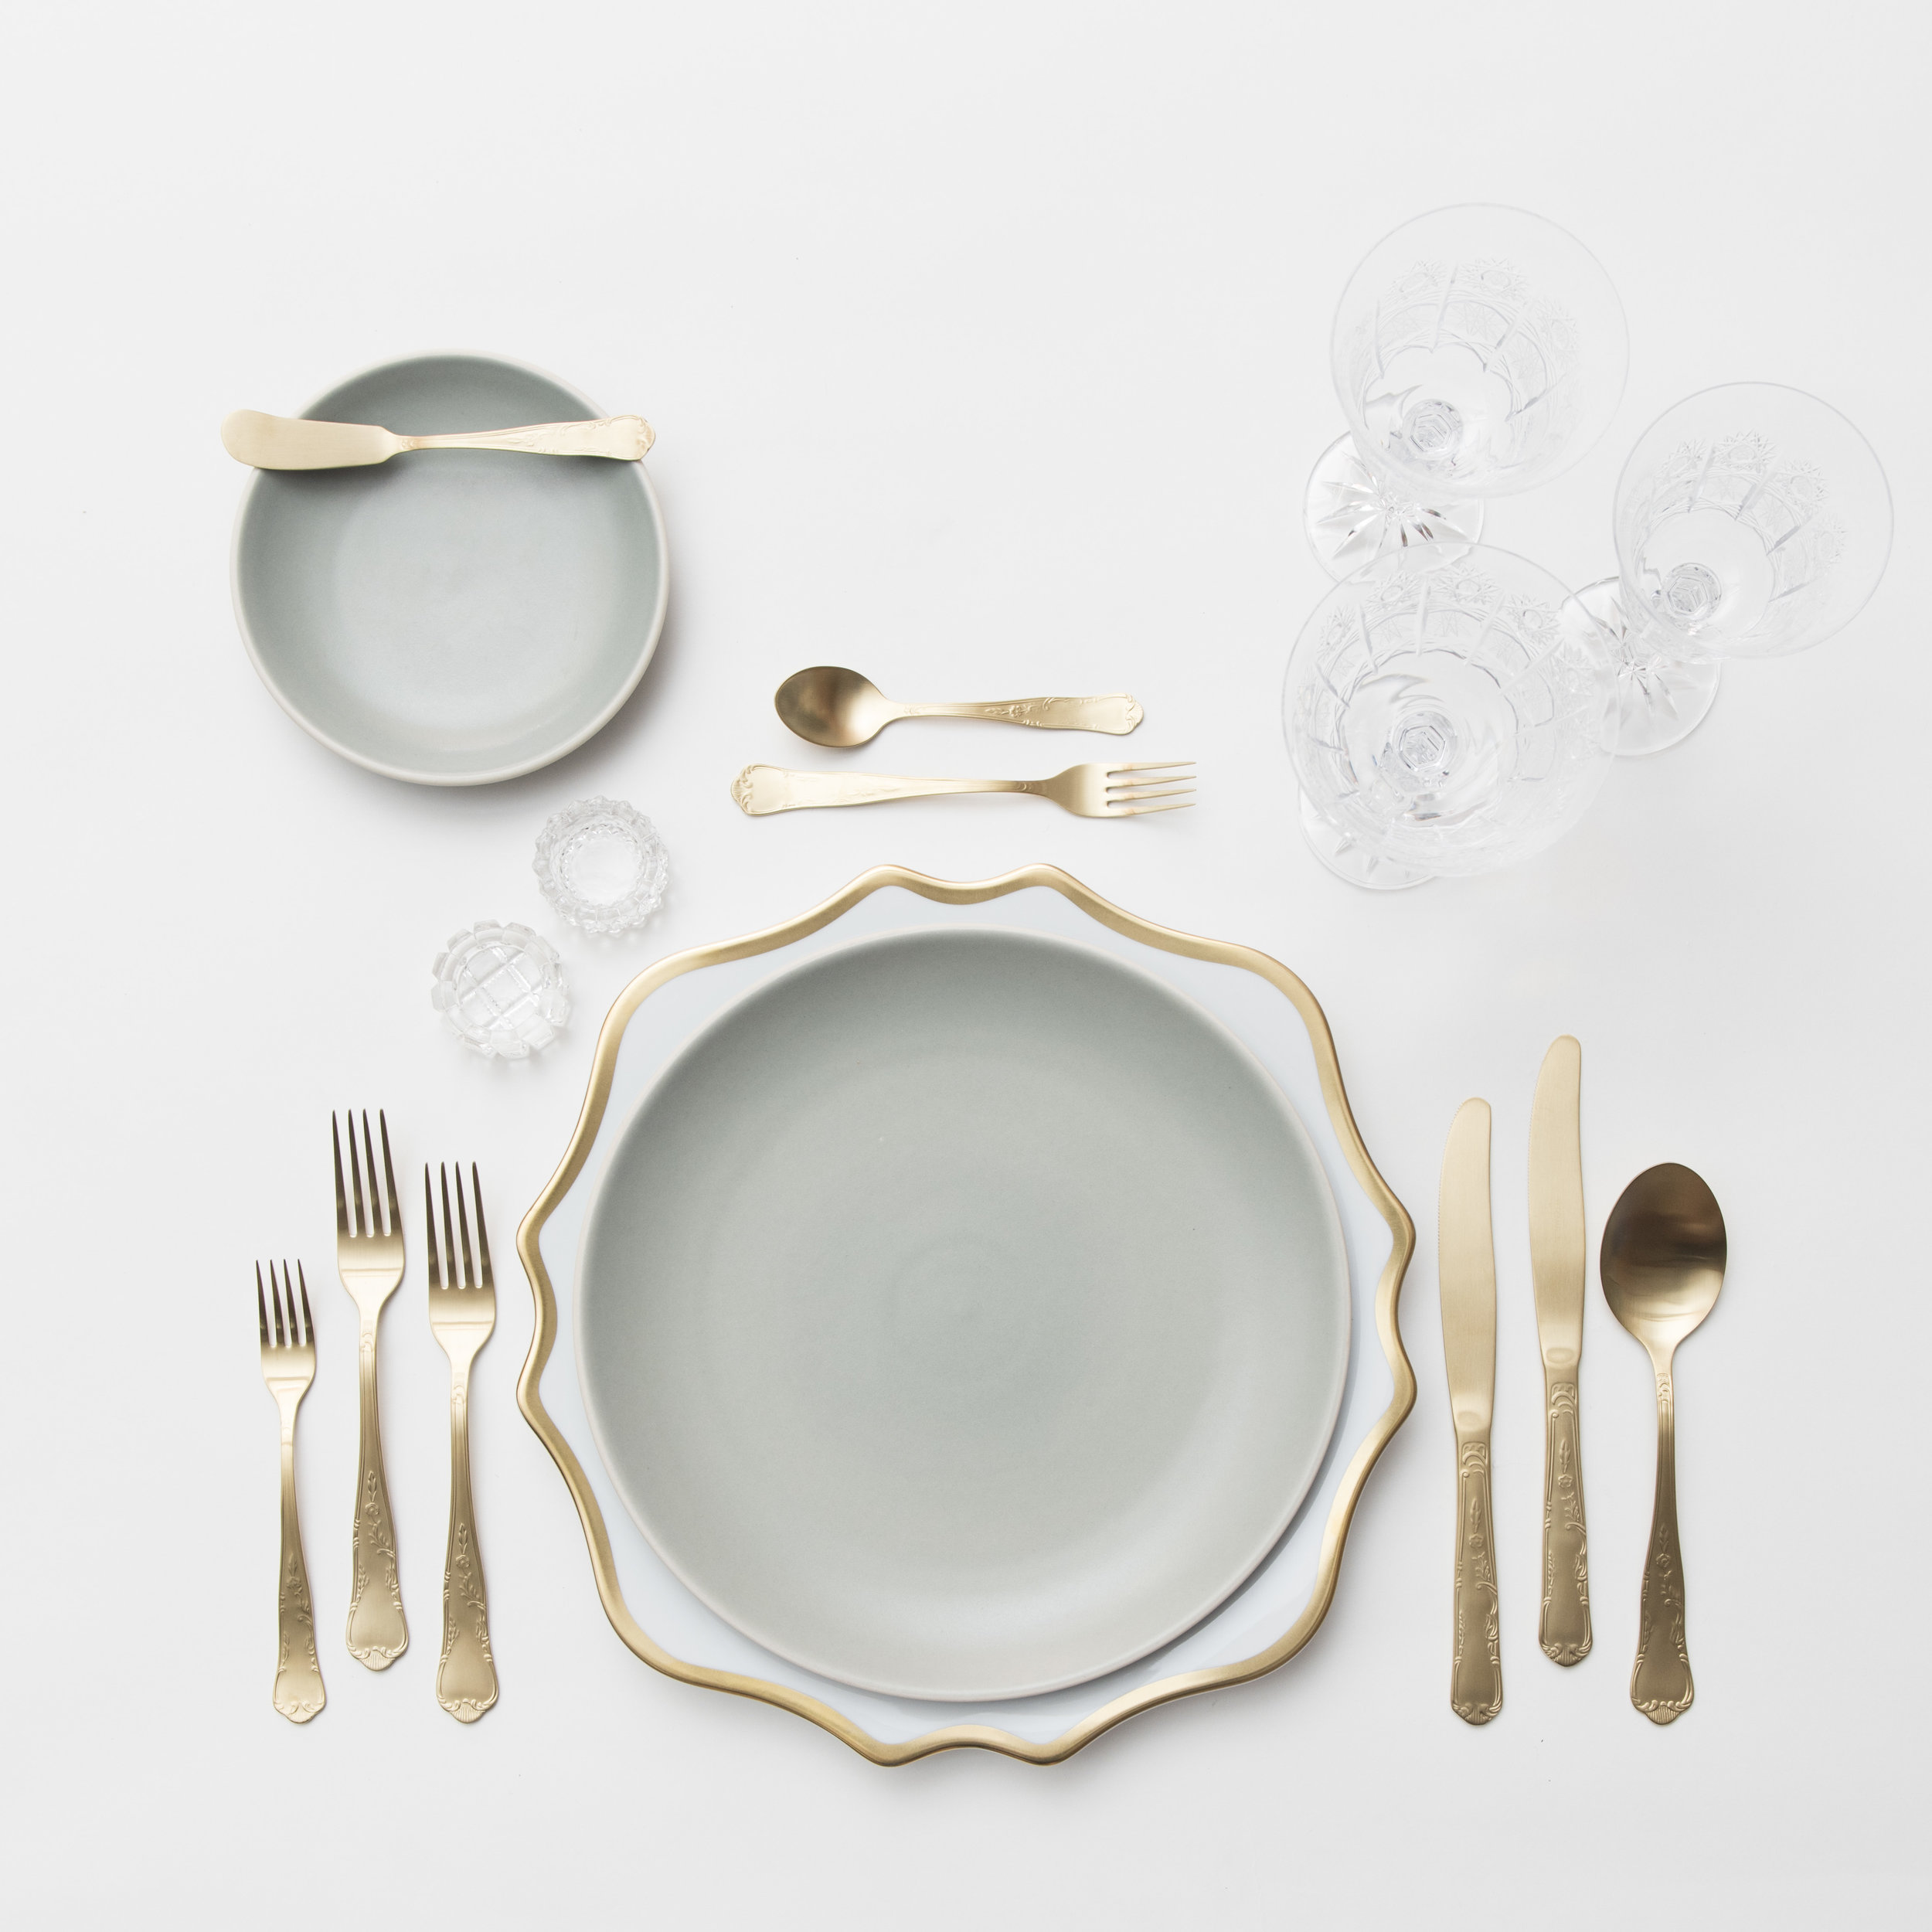 RENT: Anna Weatherley Chargers in White/Gold + Heath Ceramics in Mist + Chateau Flatware in Matte Gold + Czech Crystal Stemware + Antique Crystal Salt Cellars  SHOP:Anna Weatherley Chargers in White/Gold